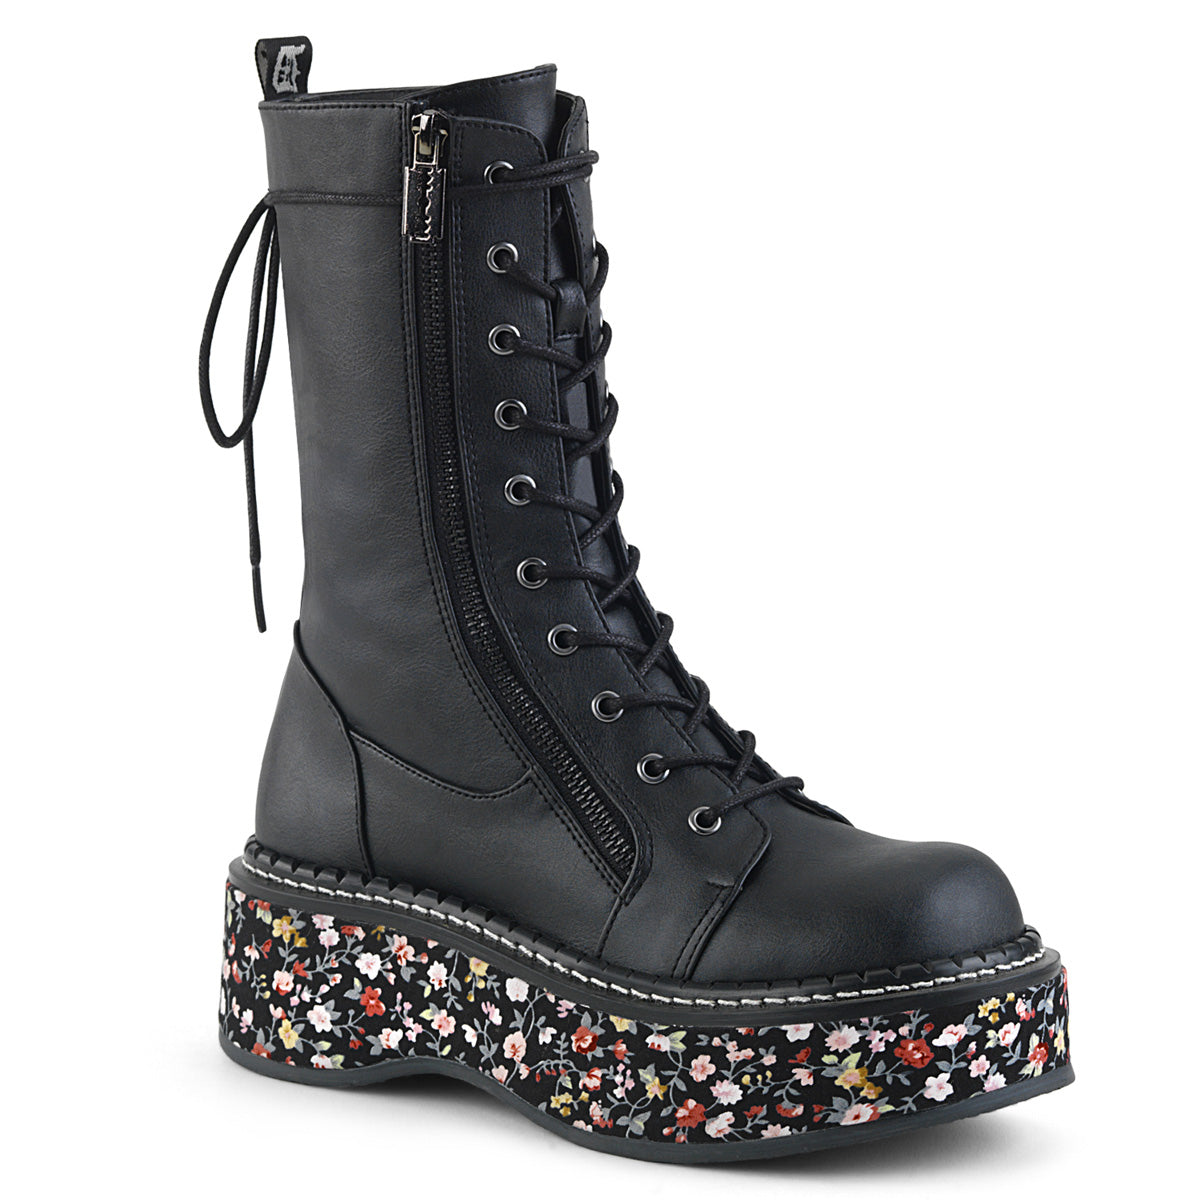 black-vegan-leather-floral-fabric